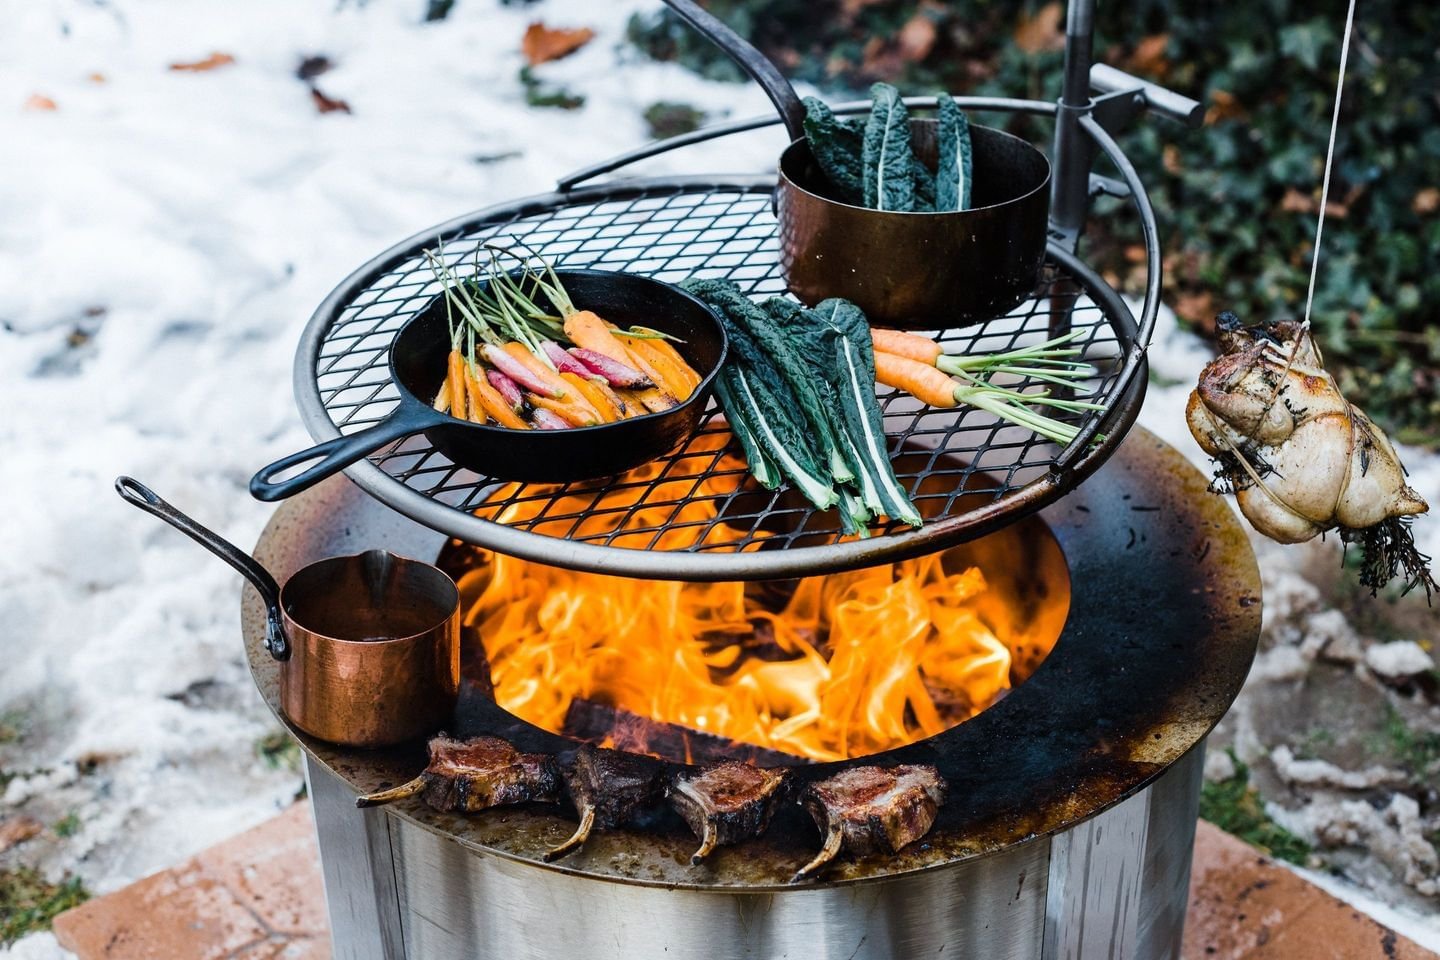 Cooking Meat and Vegetables on Fire Pit